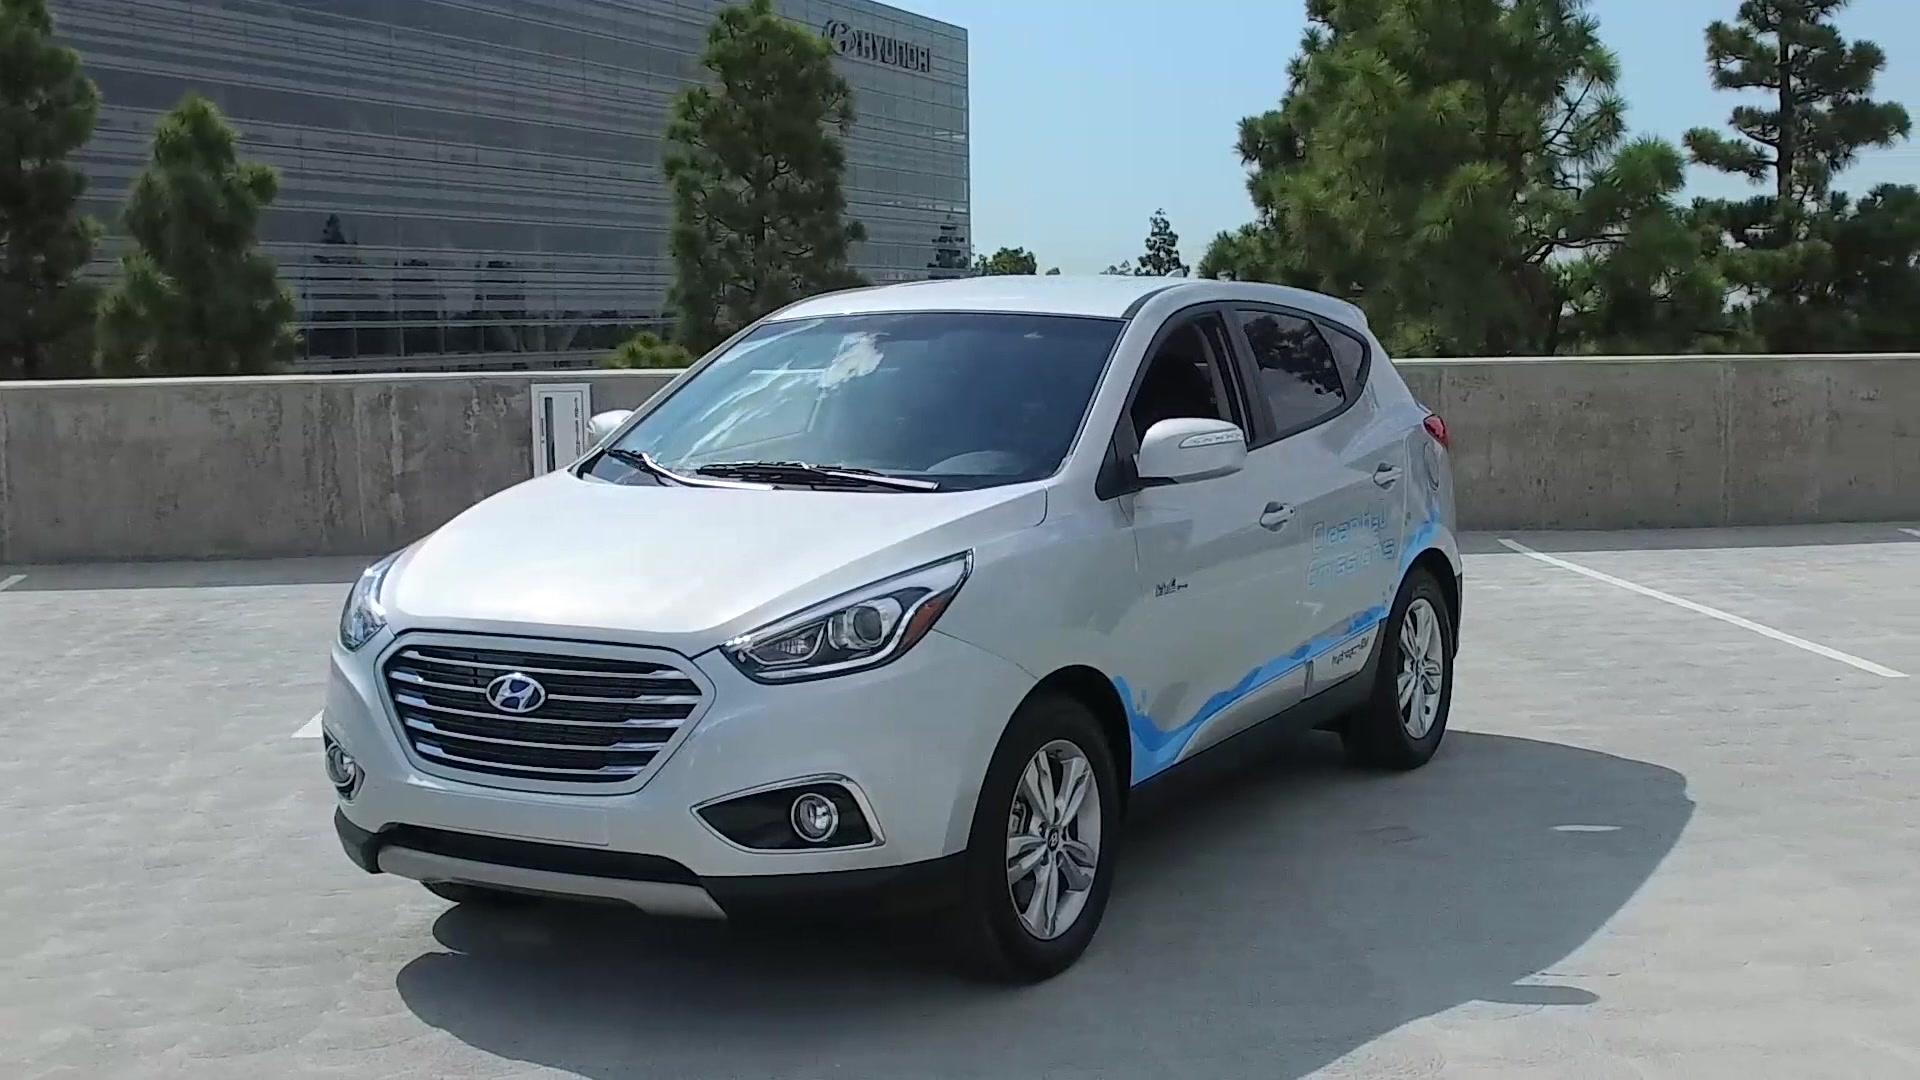 Cuv Car Hyundai S All New 2018 Hydrogen Powered Cuv Comes Into Focus